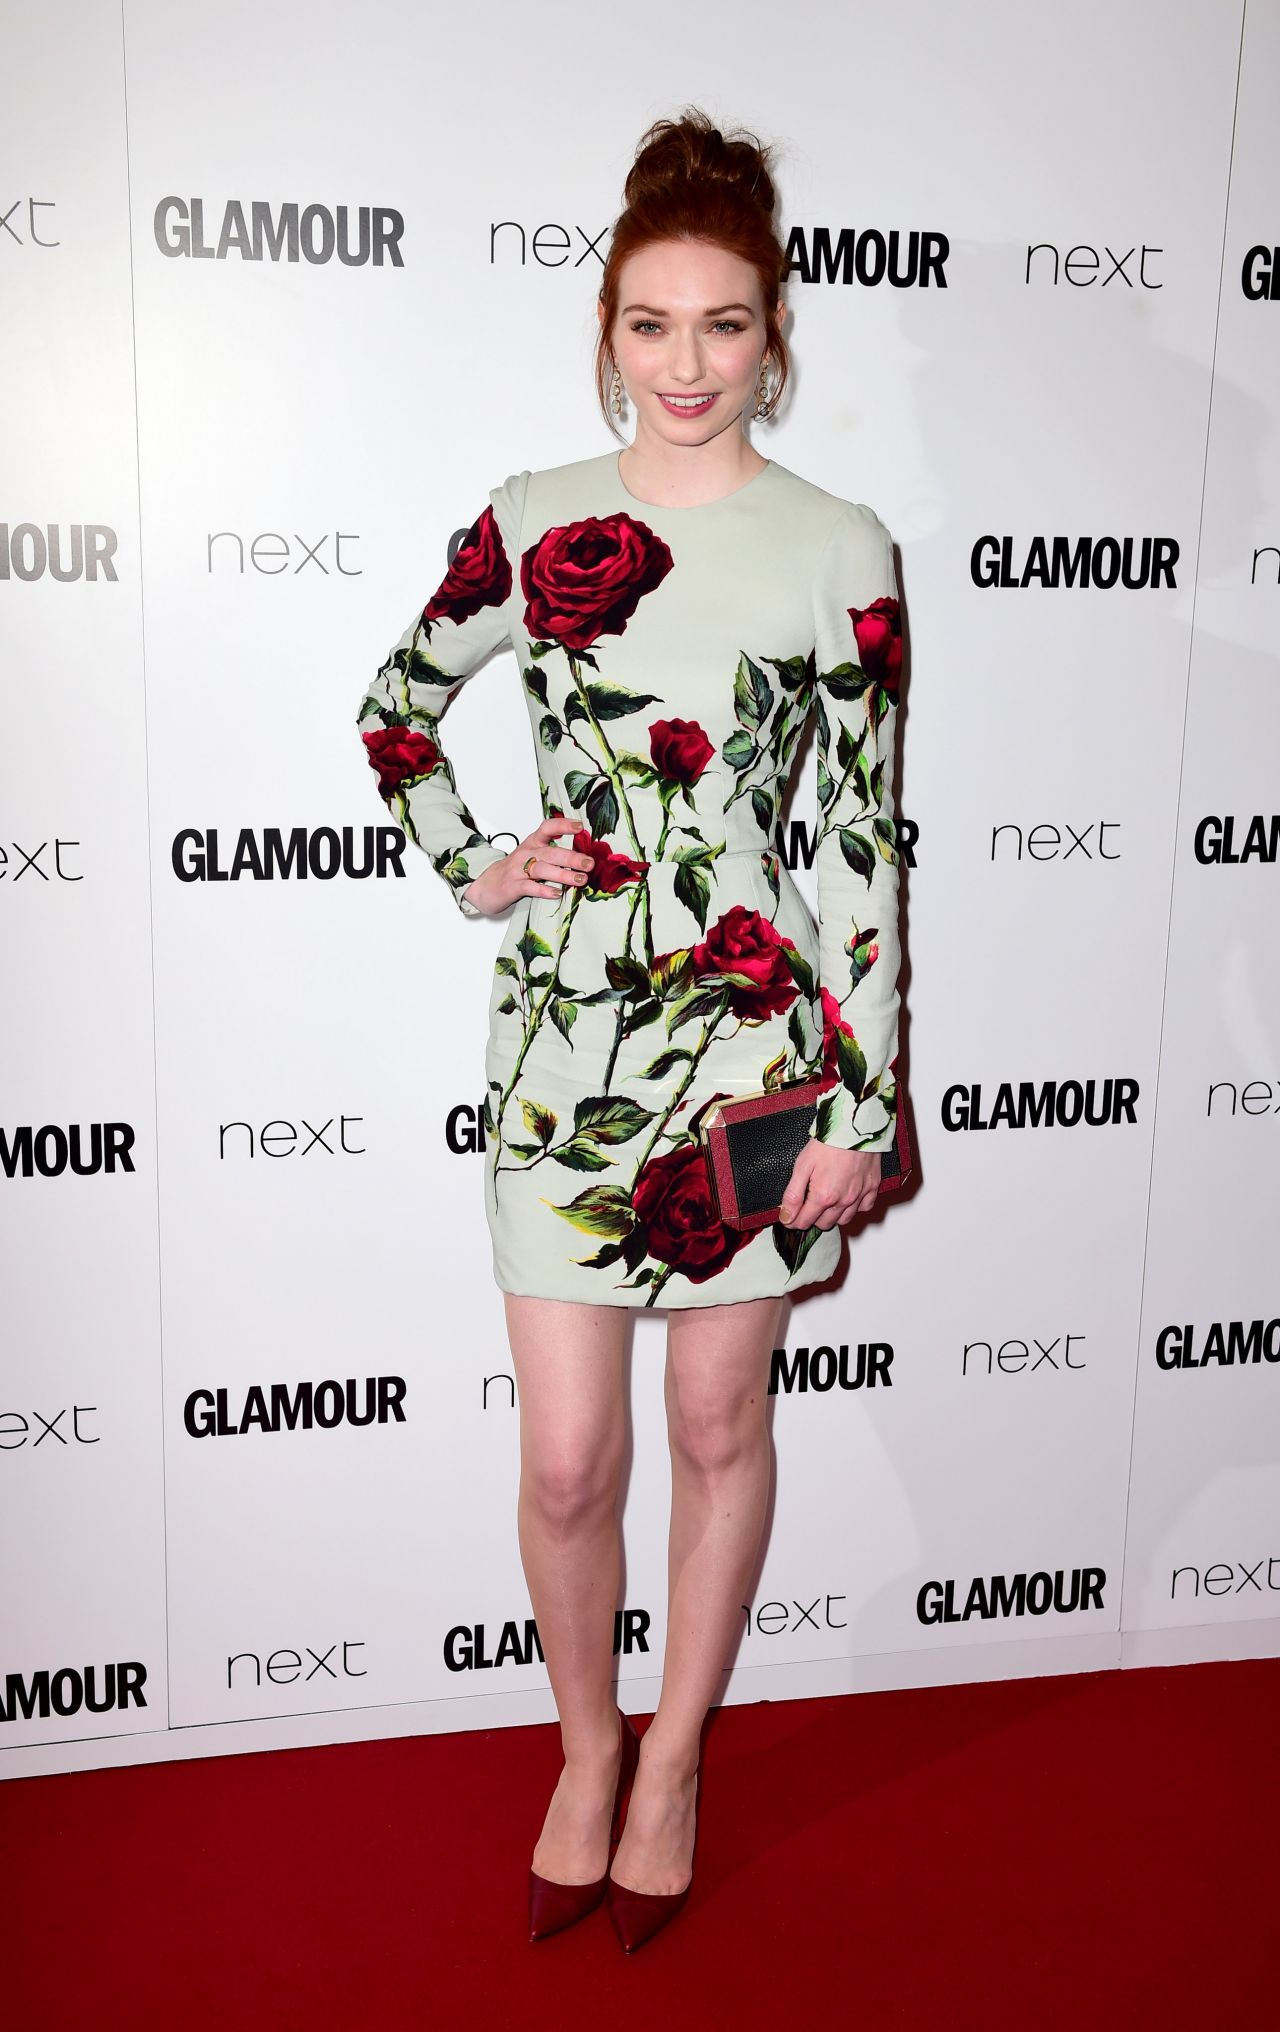 http://celebmafia.com/wp-content/uploads/2015/06/eleanor-tomlinson-2015-glamour-women-of-the-year-awards-in-london_9.jpg